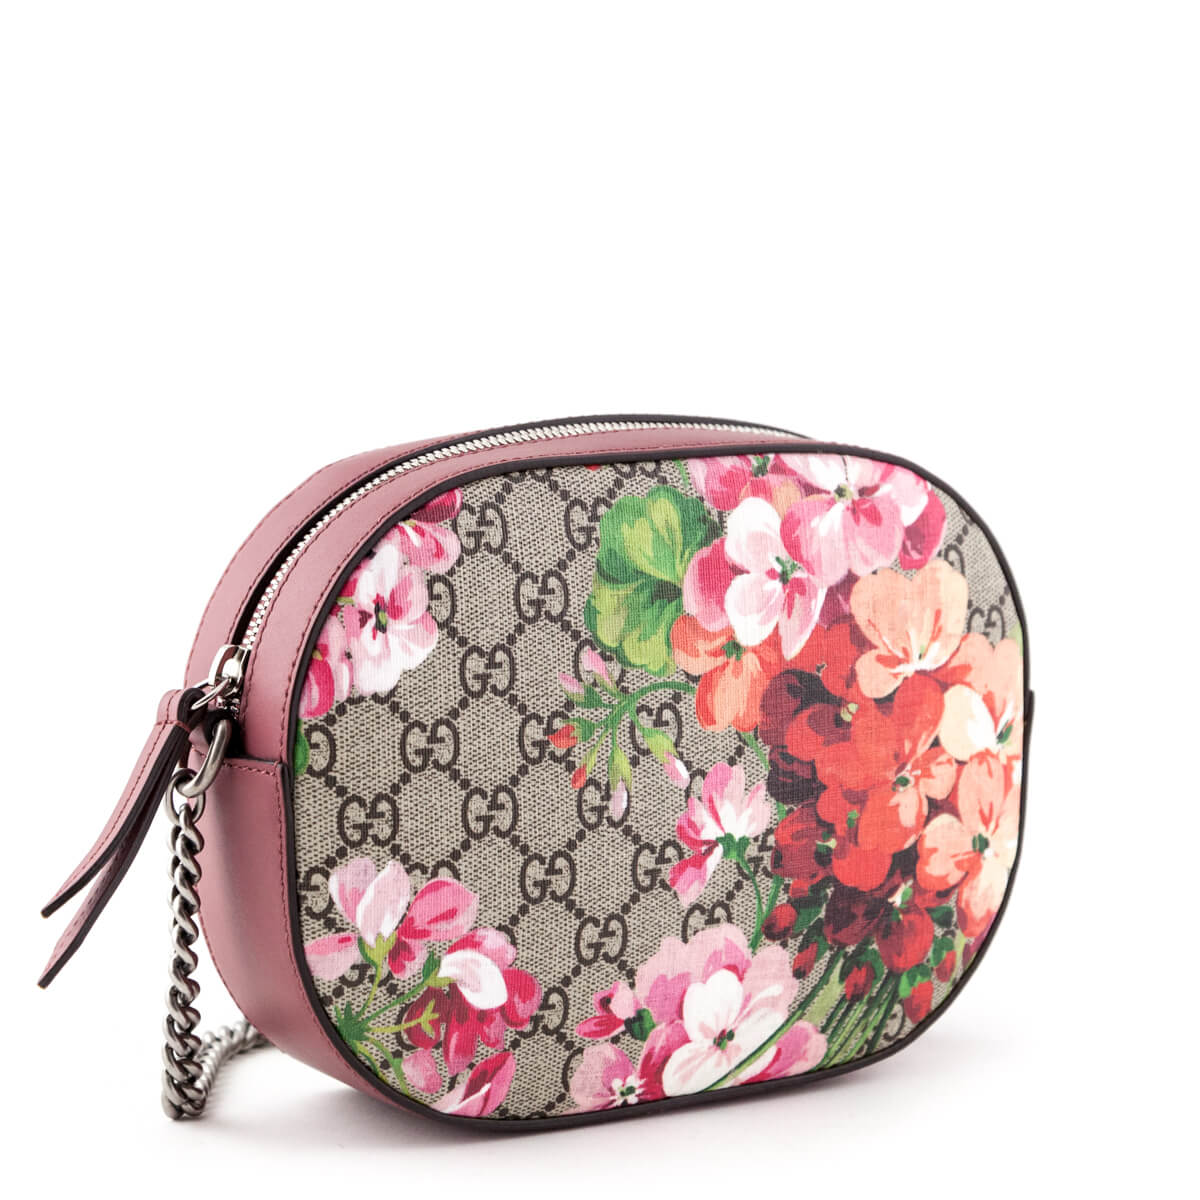 07681076108a ... Gucci Pink GG Blooms Mini Chain Bag - LOVE that BAG - Preowned Authentic  Designer Handbags ...